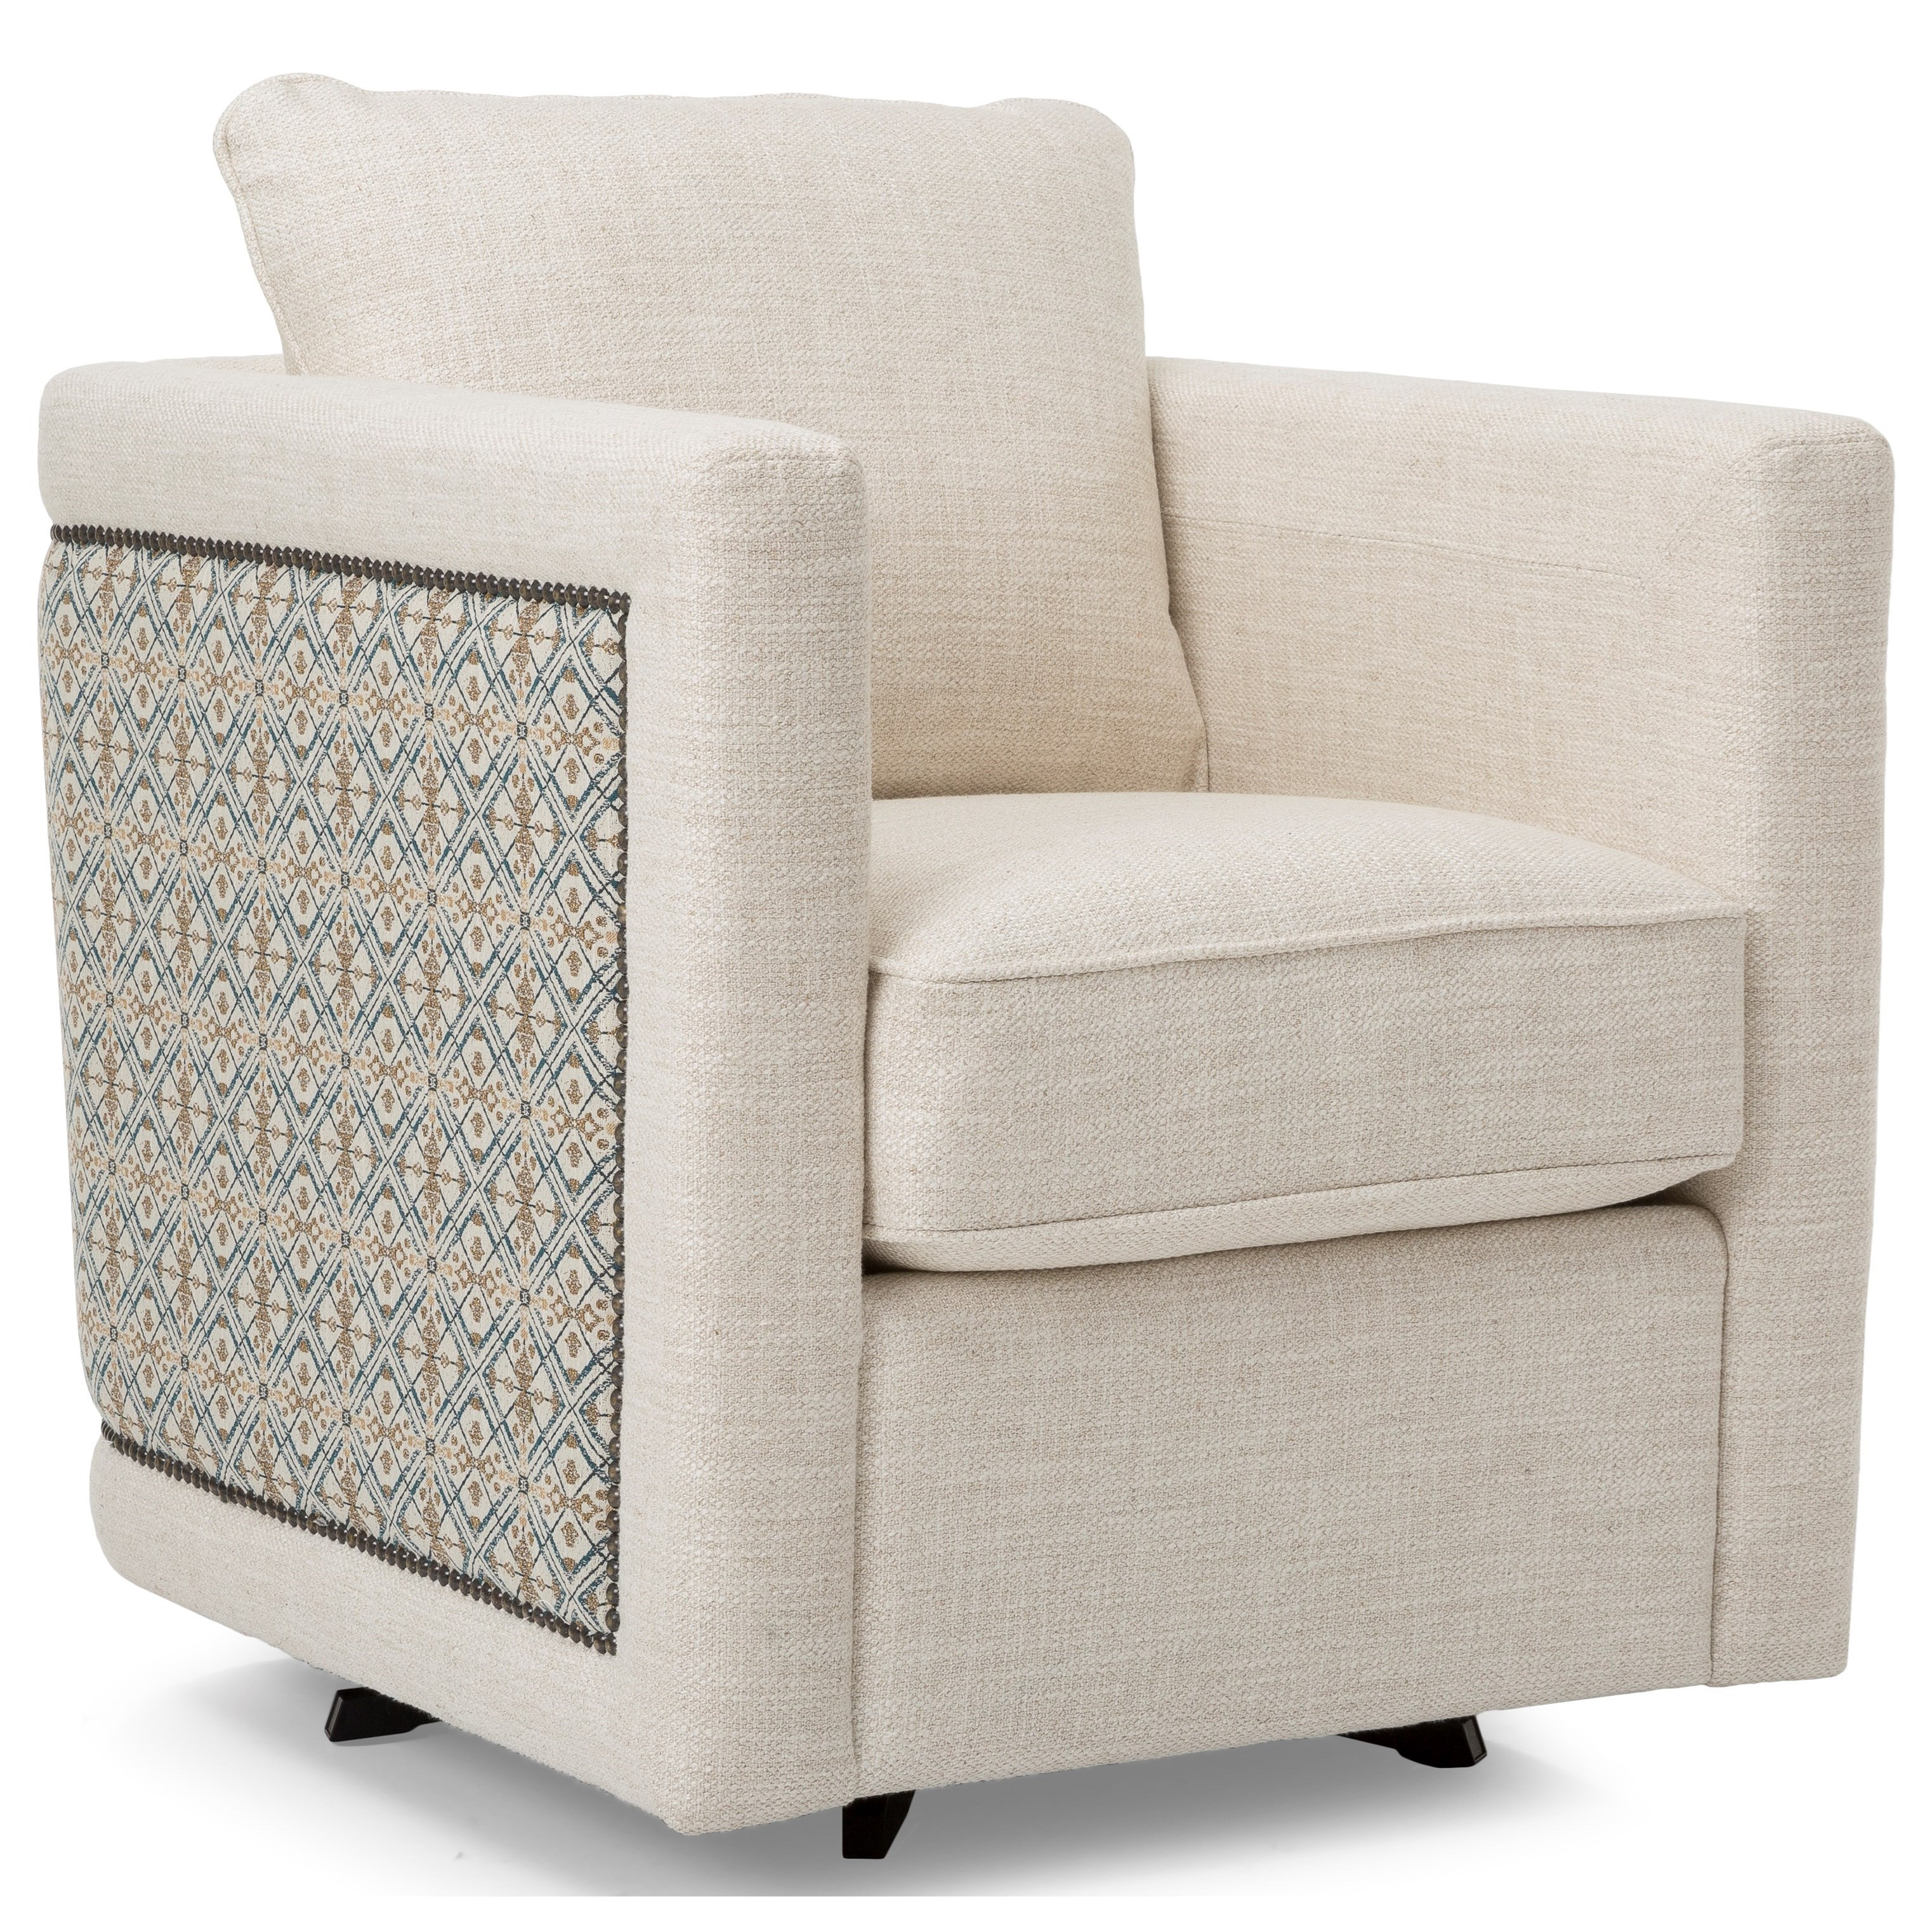 2760 Swivel Chair by Decor-Rest at Reid's Furniture